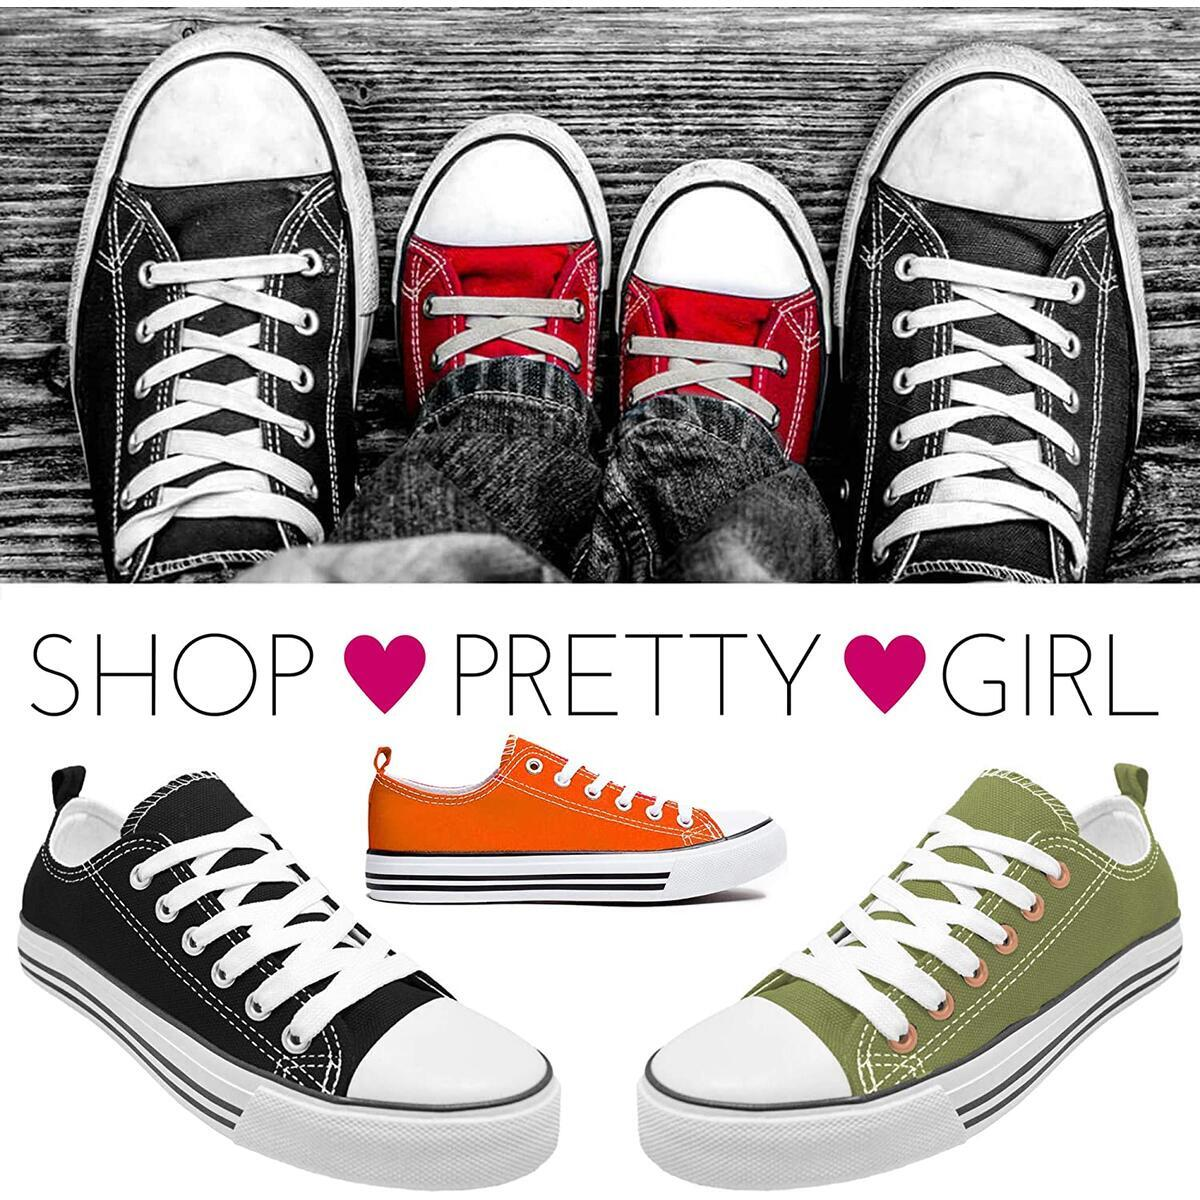 Rebate Only For Color: Black and White Size: 9 -  Women's Canvas Sneakers Casual Shoes Solid Colors Low Top Low Cut Lace up